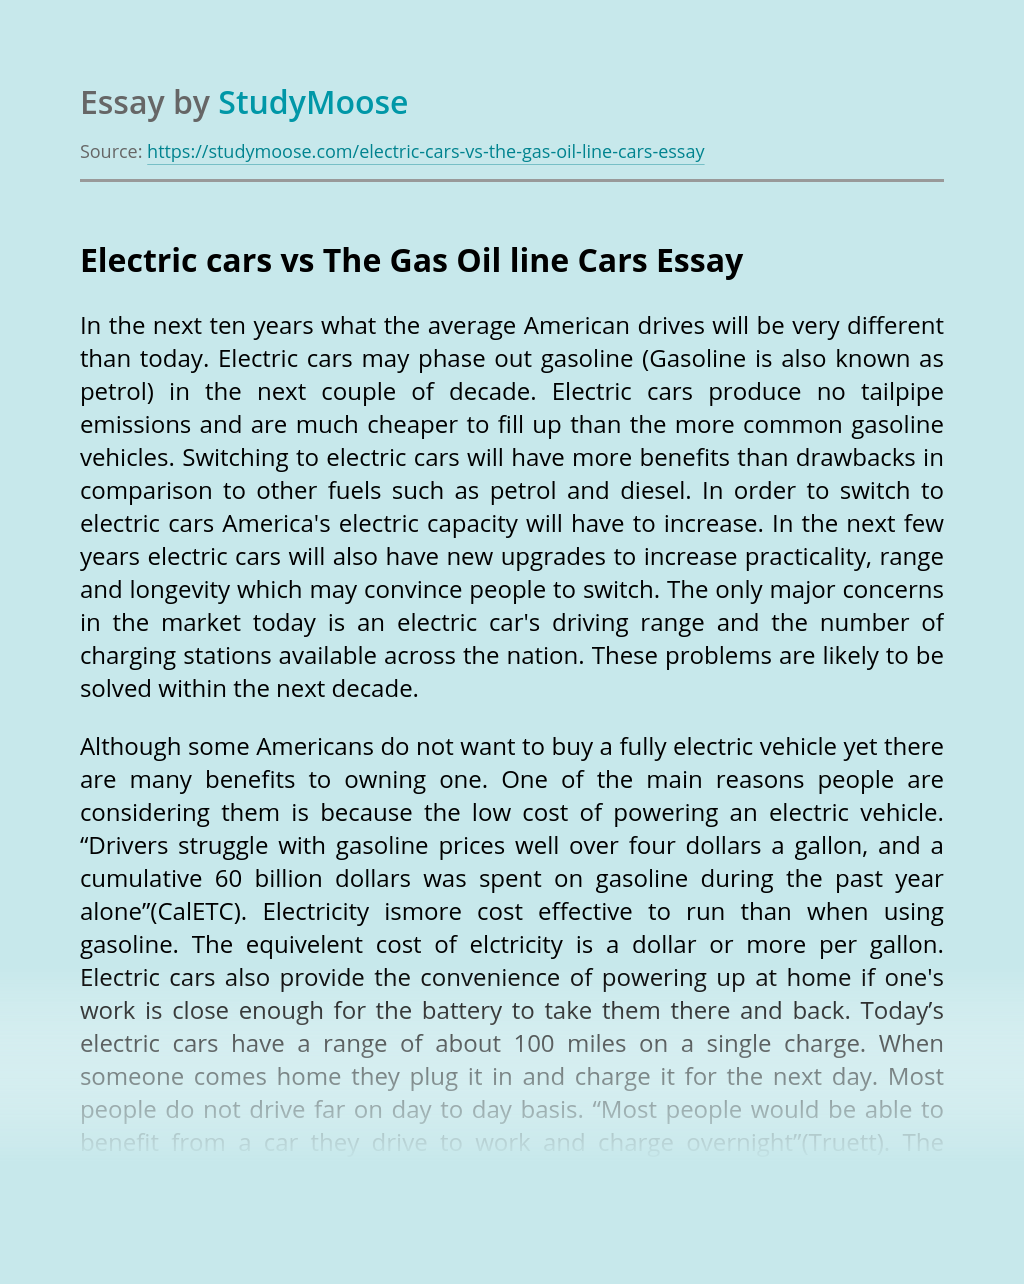 Electric cars vs The Gas Oil line Cars